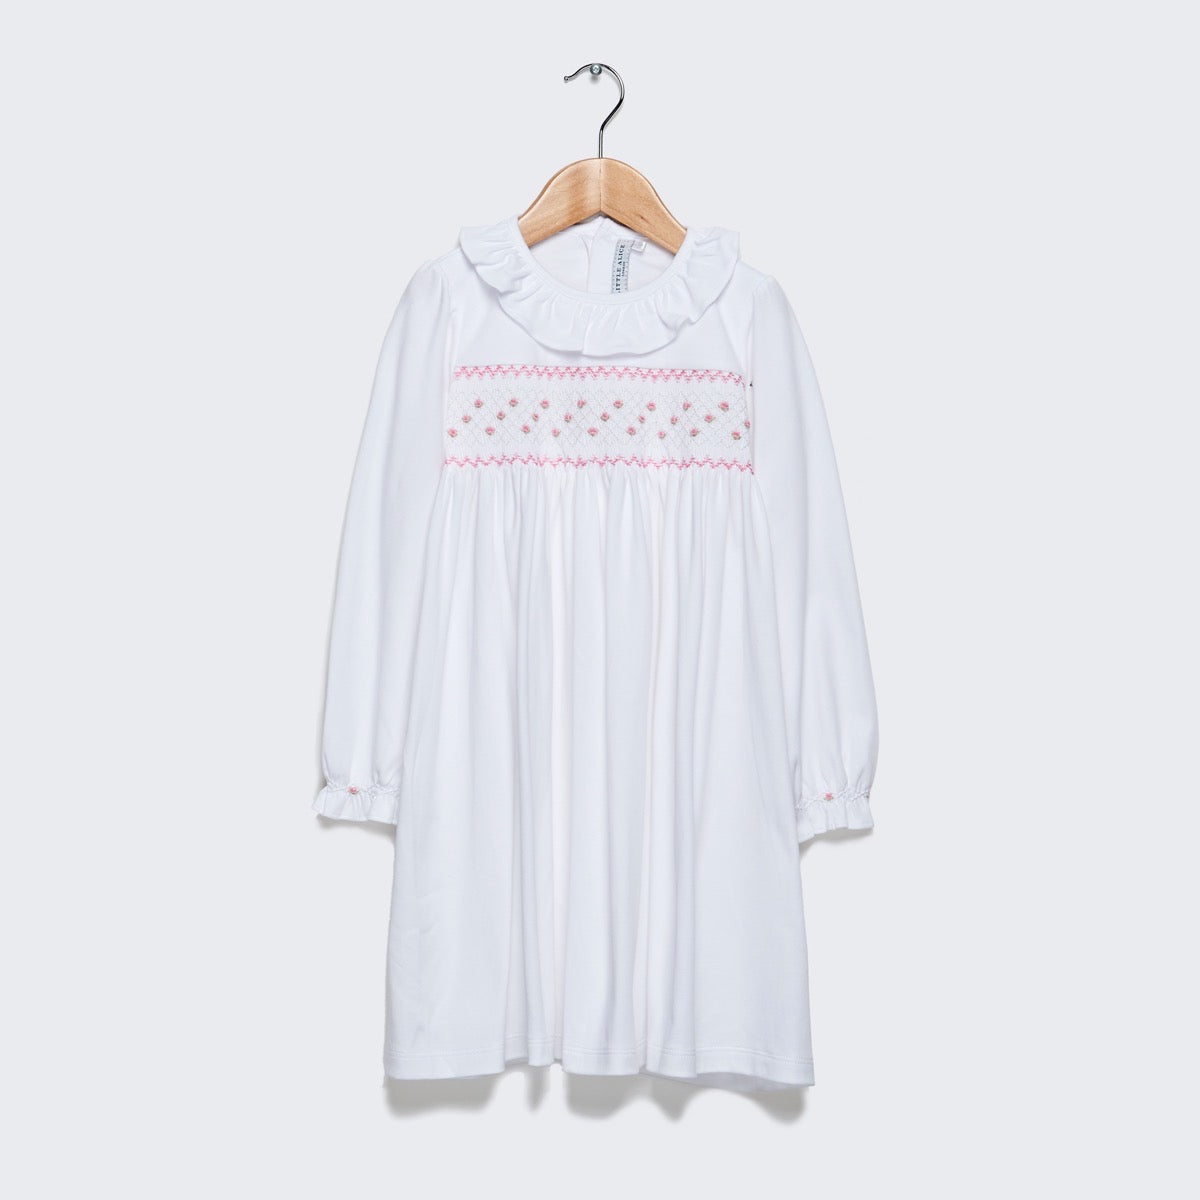 Long Sleeve Nightie - Pink smocking